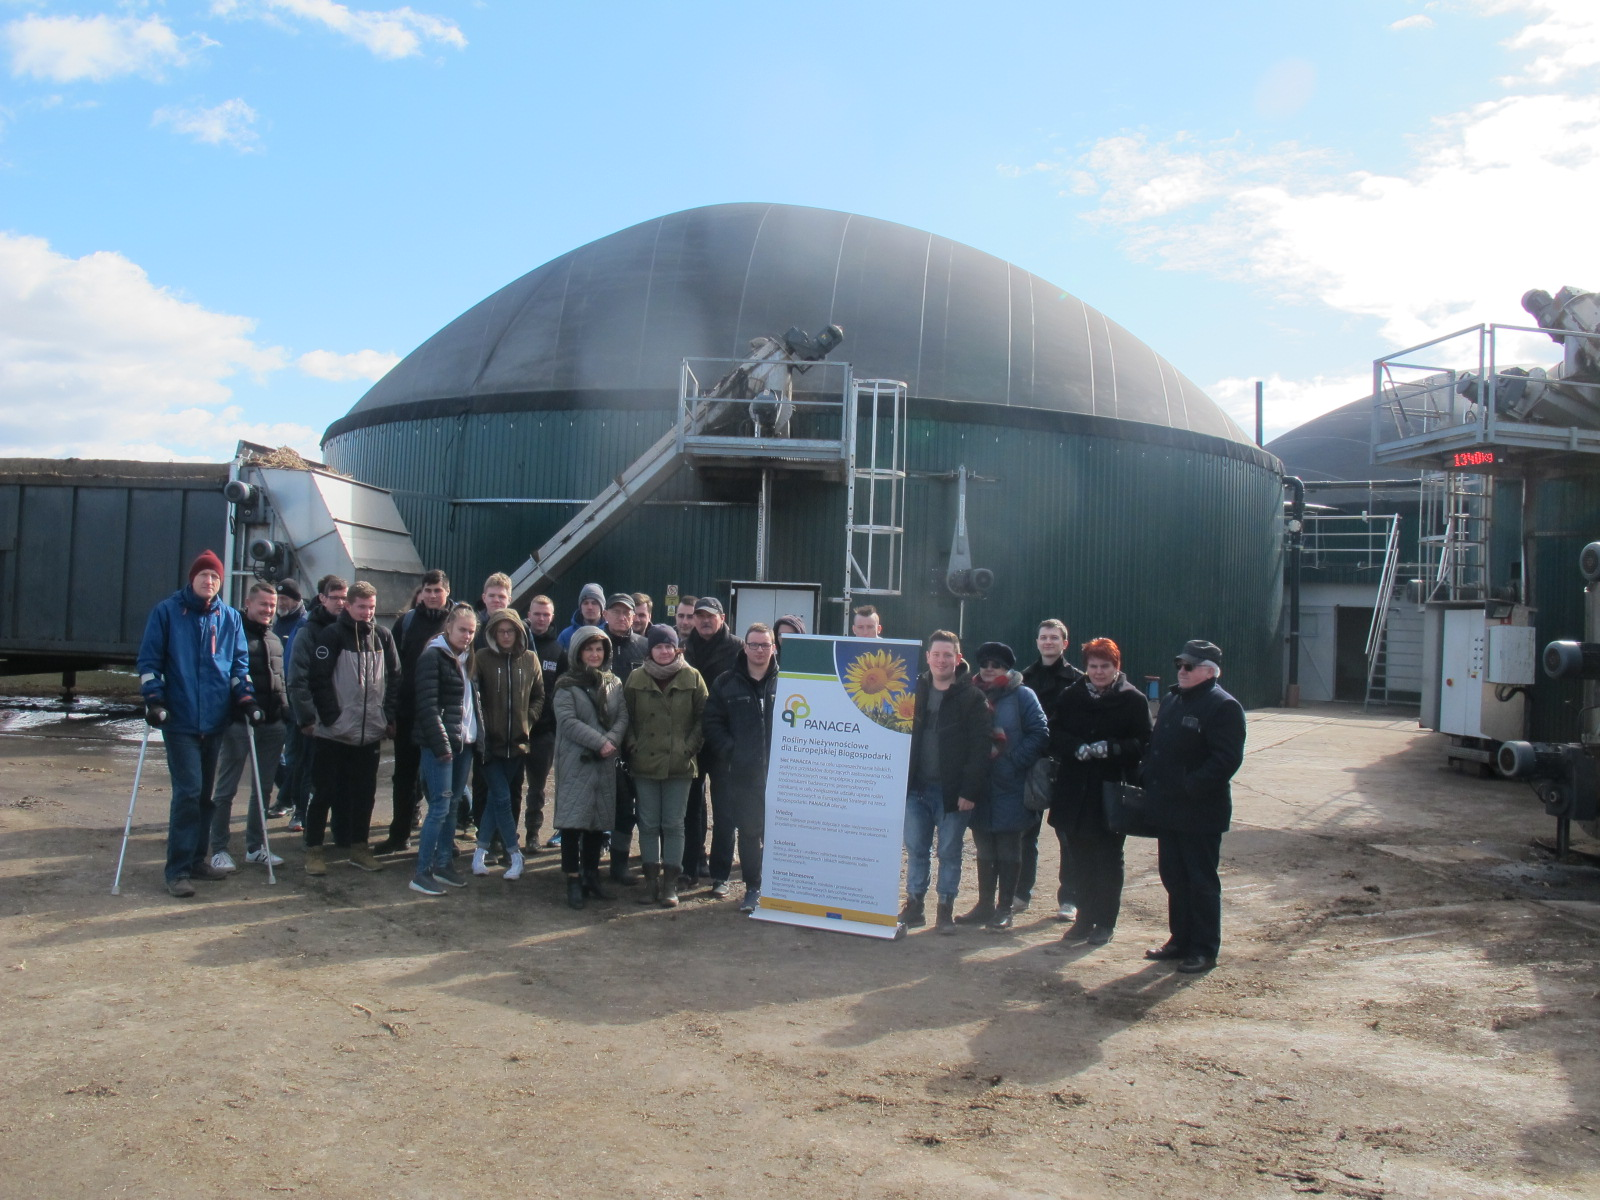 Demonstration day in an agricultural biogas plant – Panacea